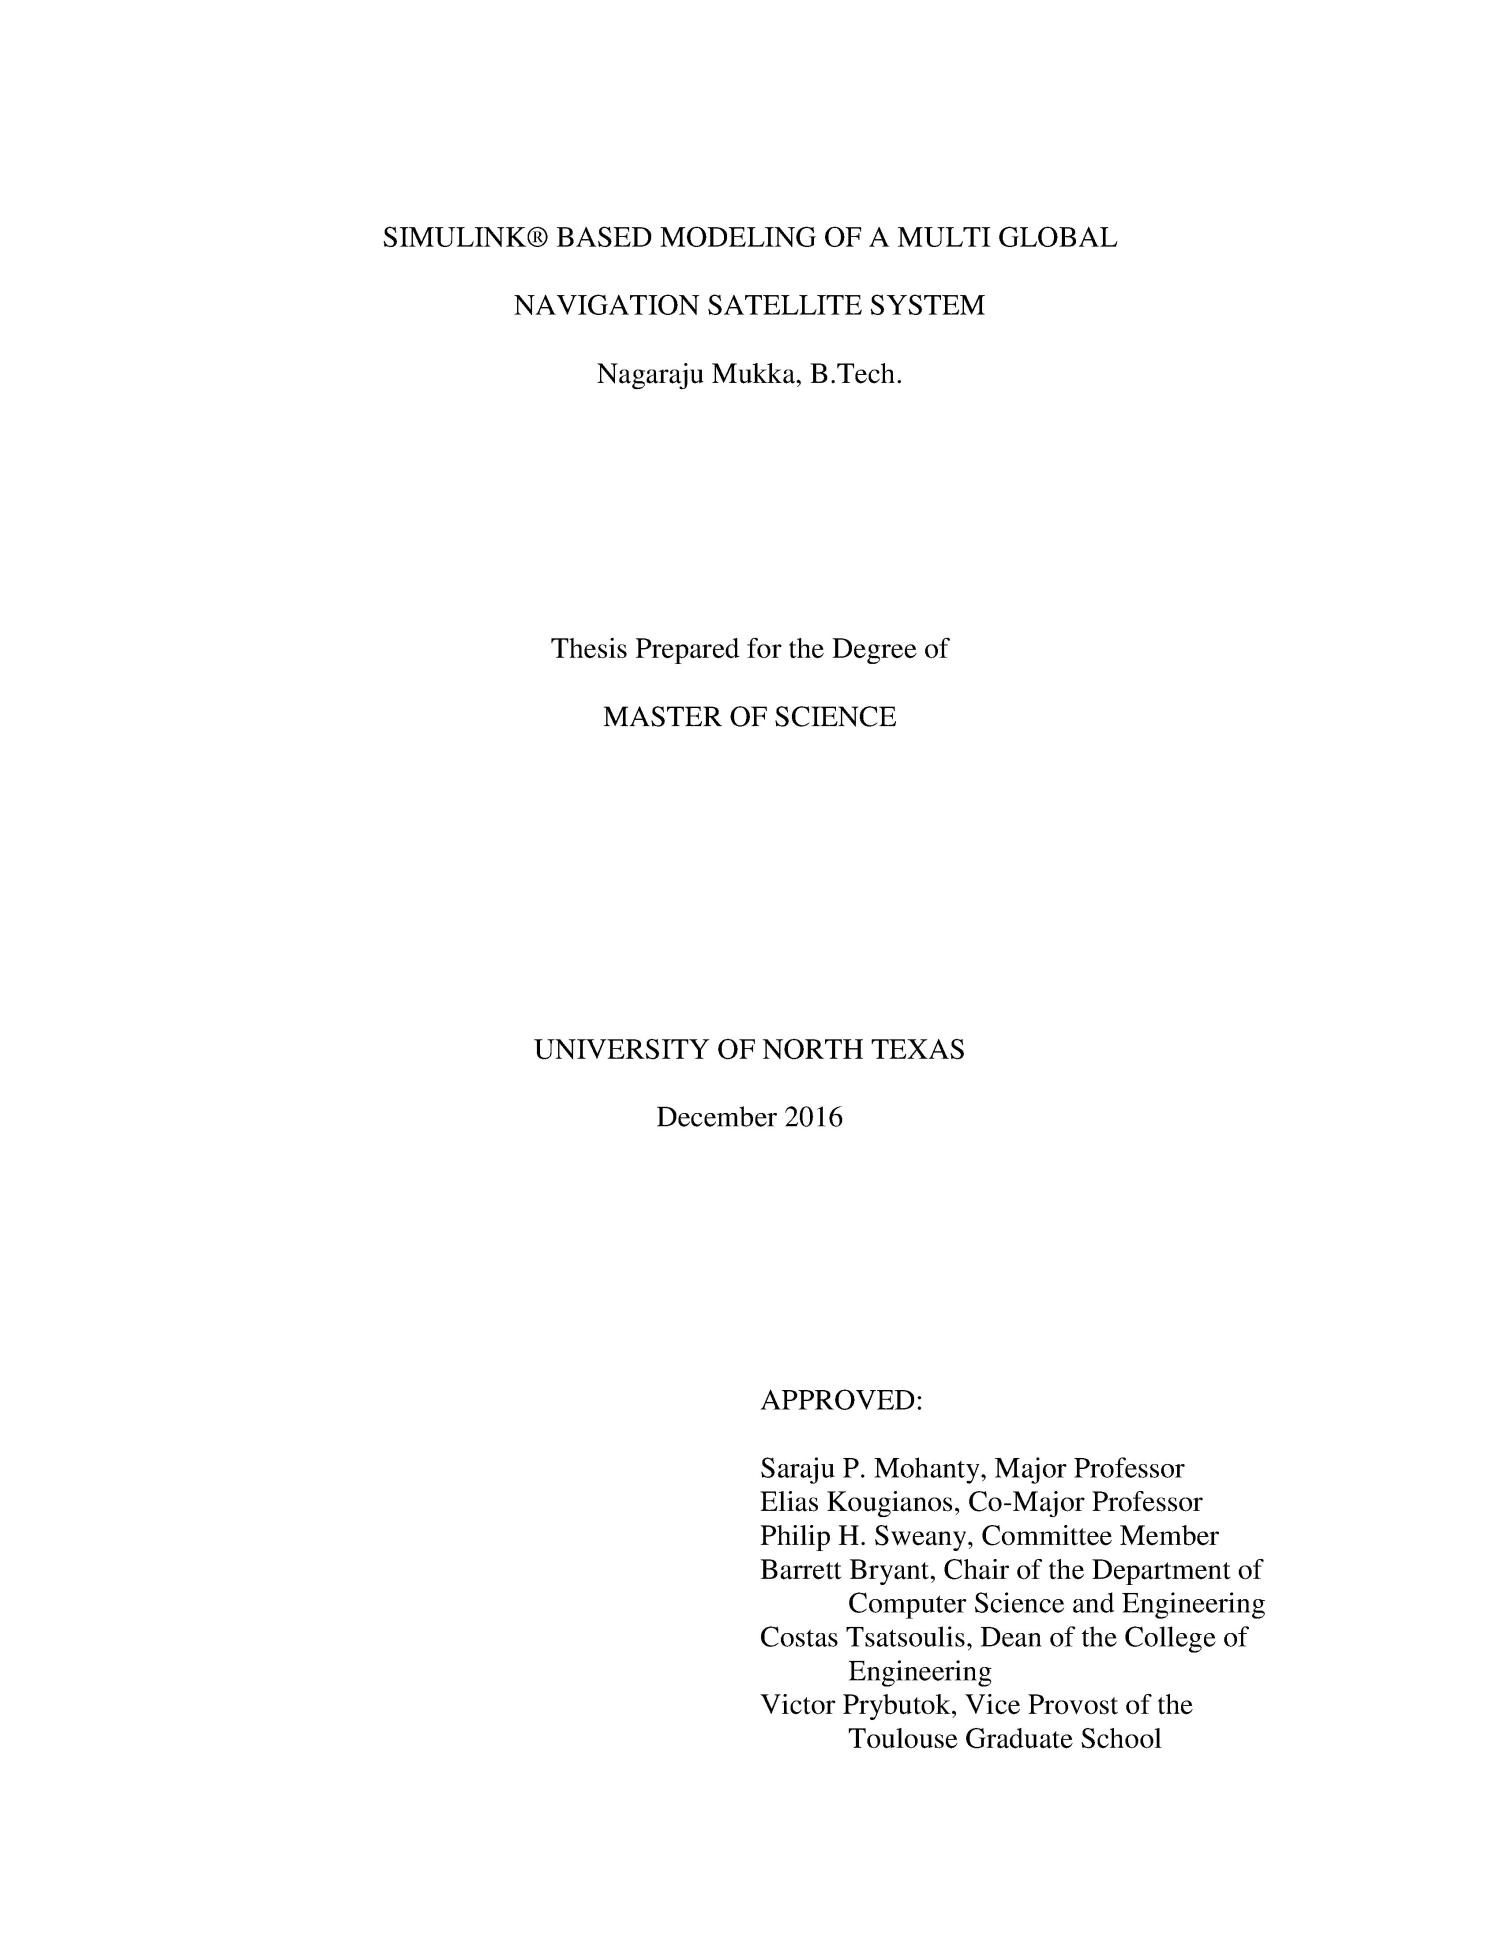 Uhf in libraries master thesis